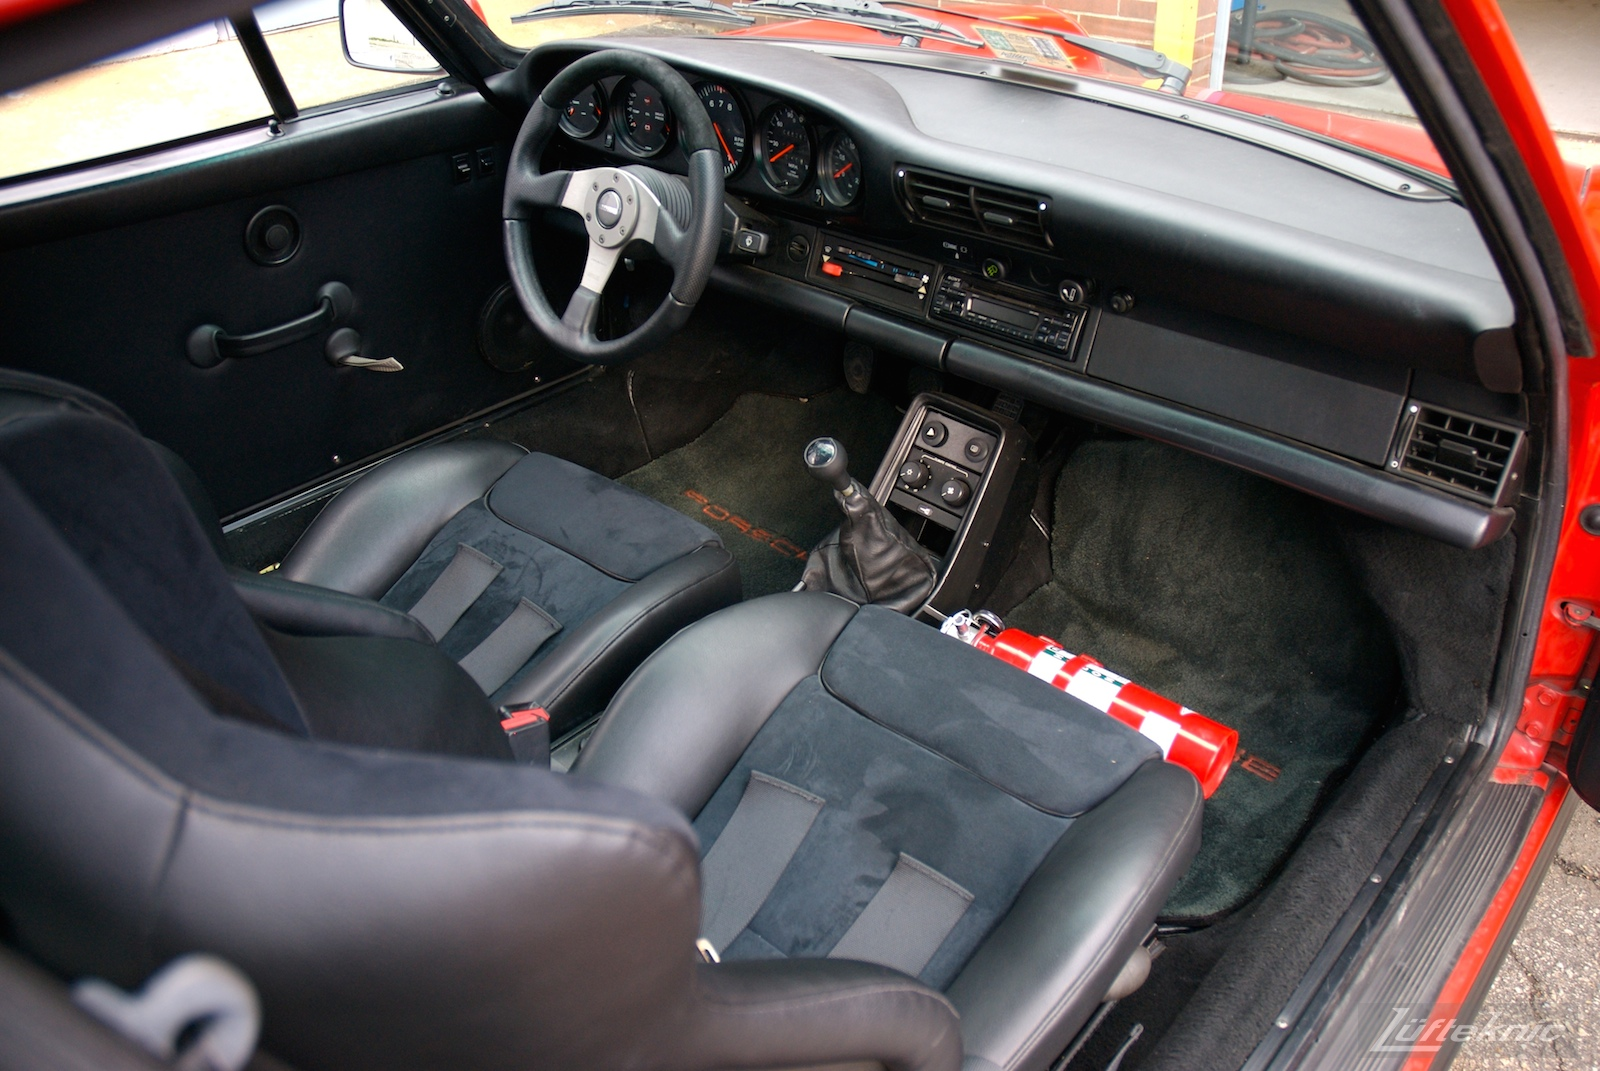 Red Porsche 930 Turbo interior.